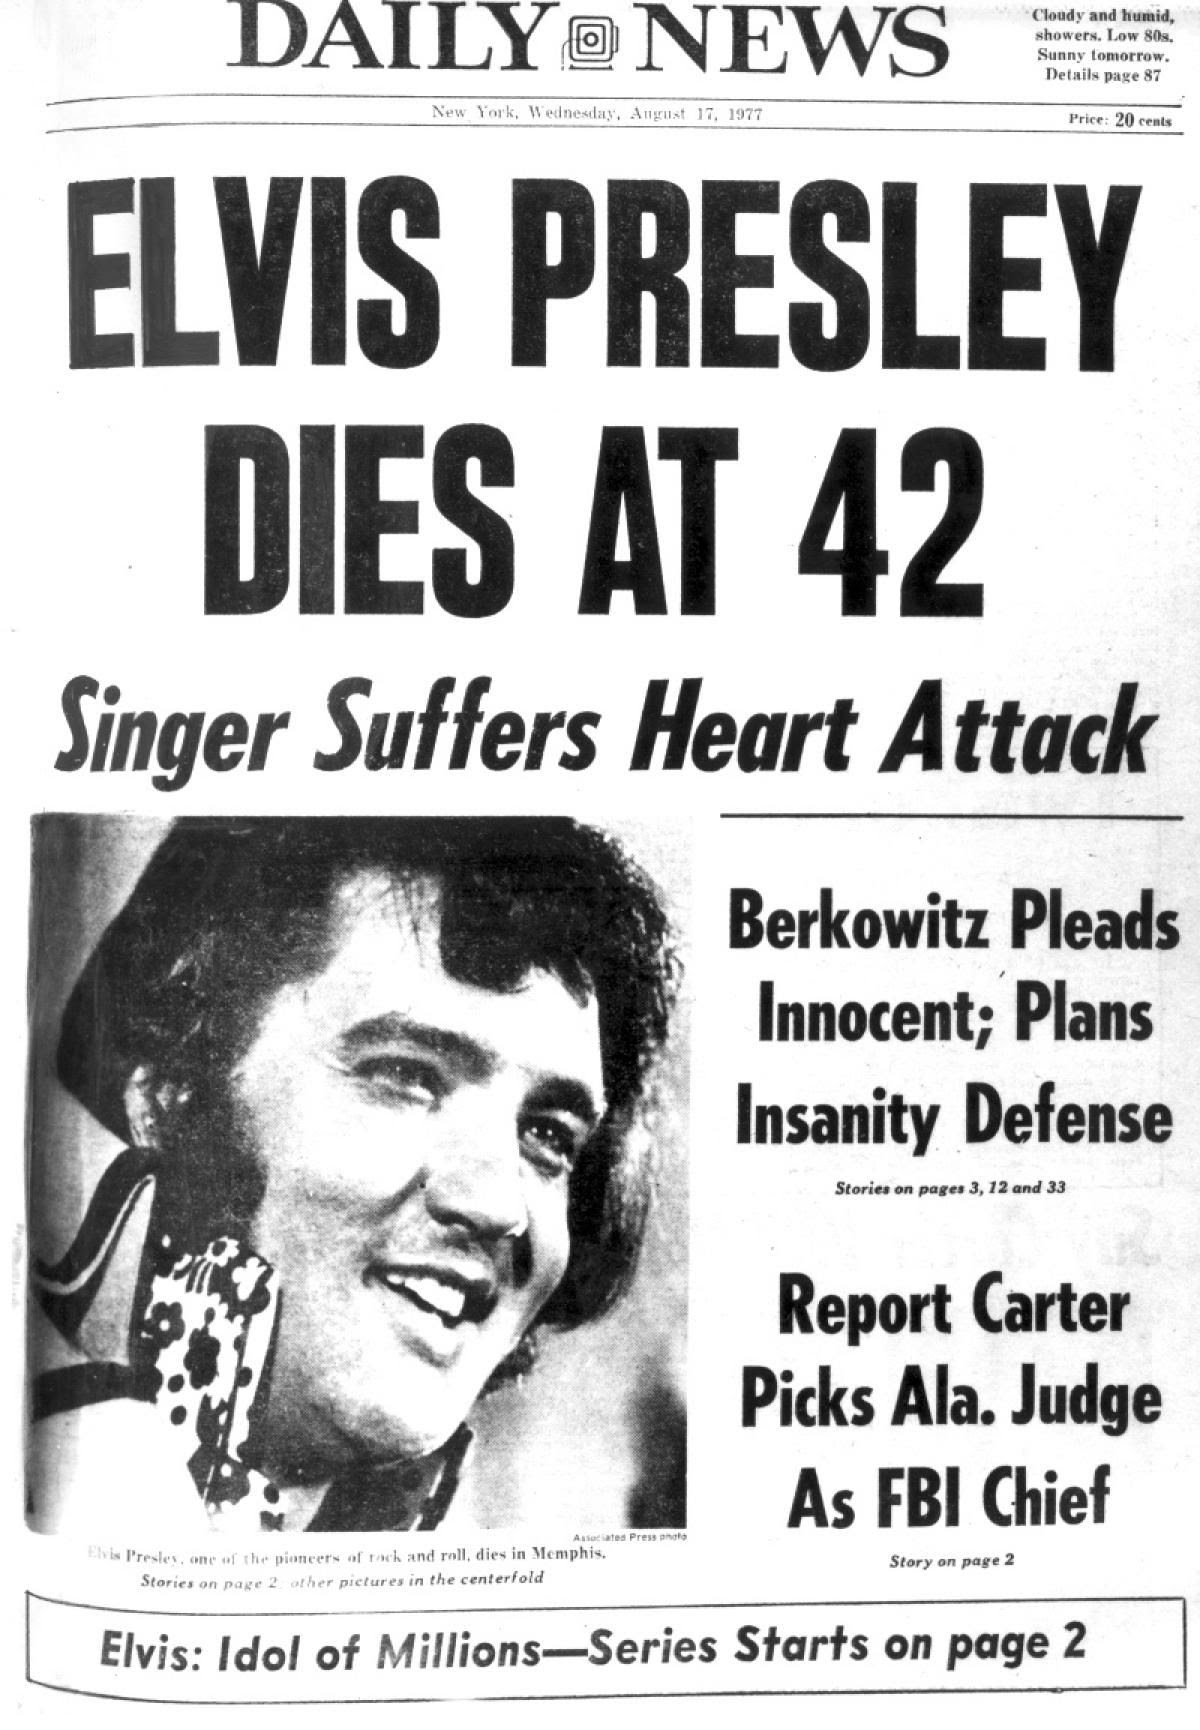 1000+ images about New York Daily News on Pinterest | Shocking ...